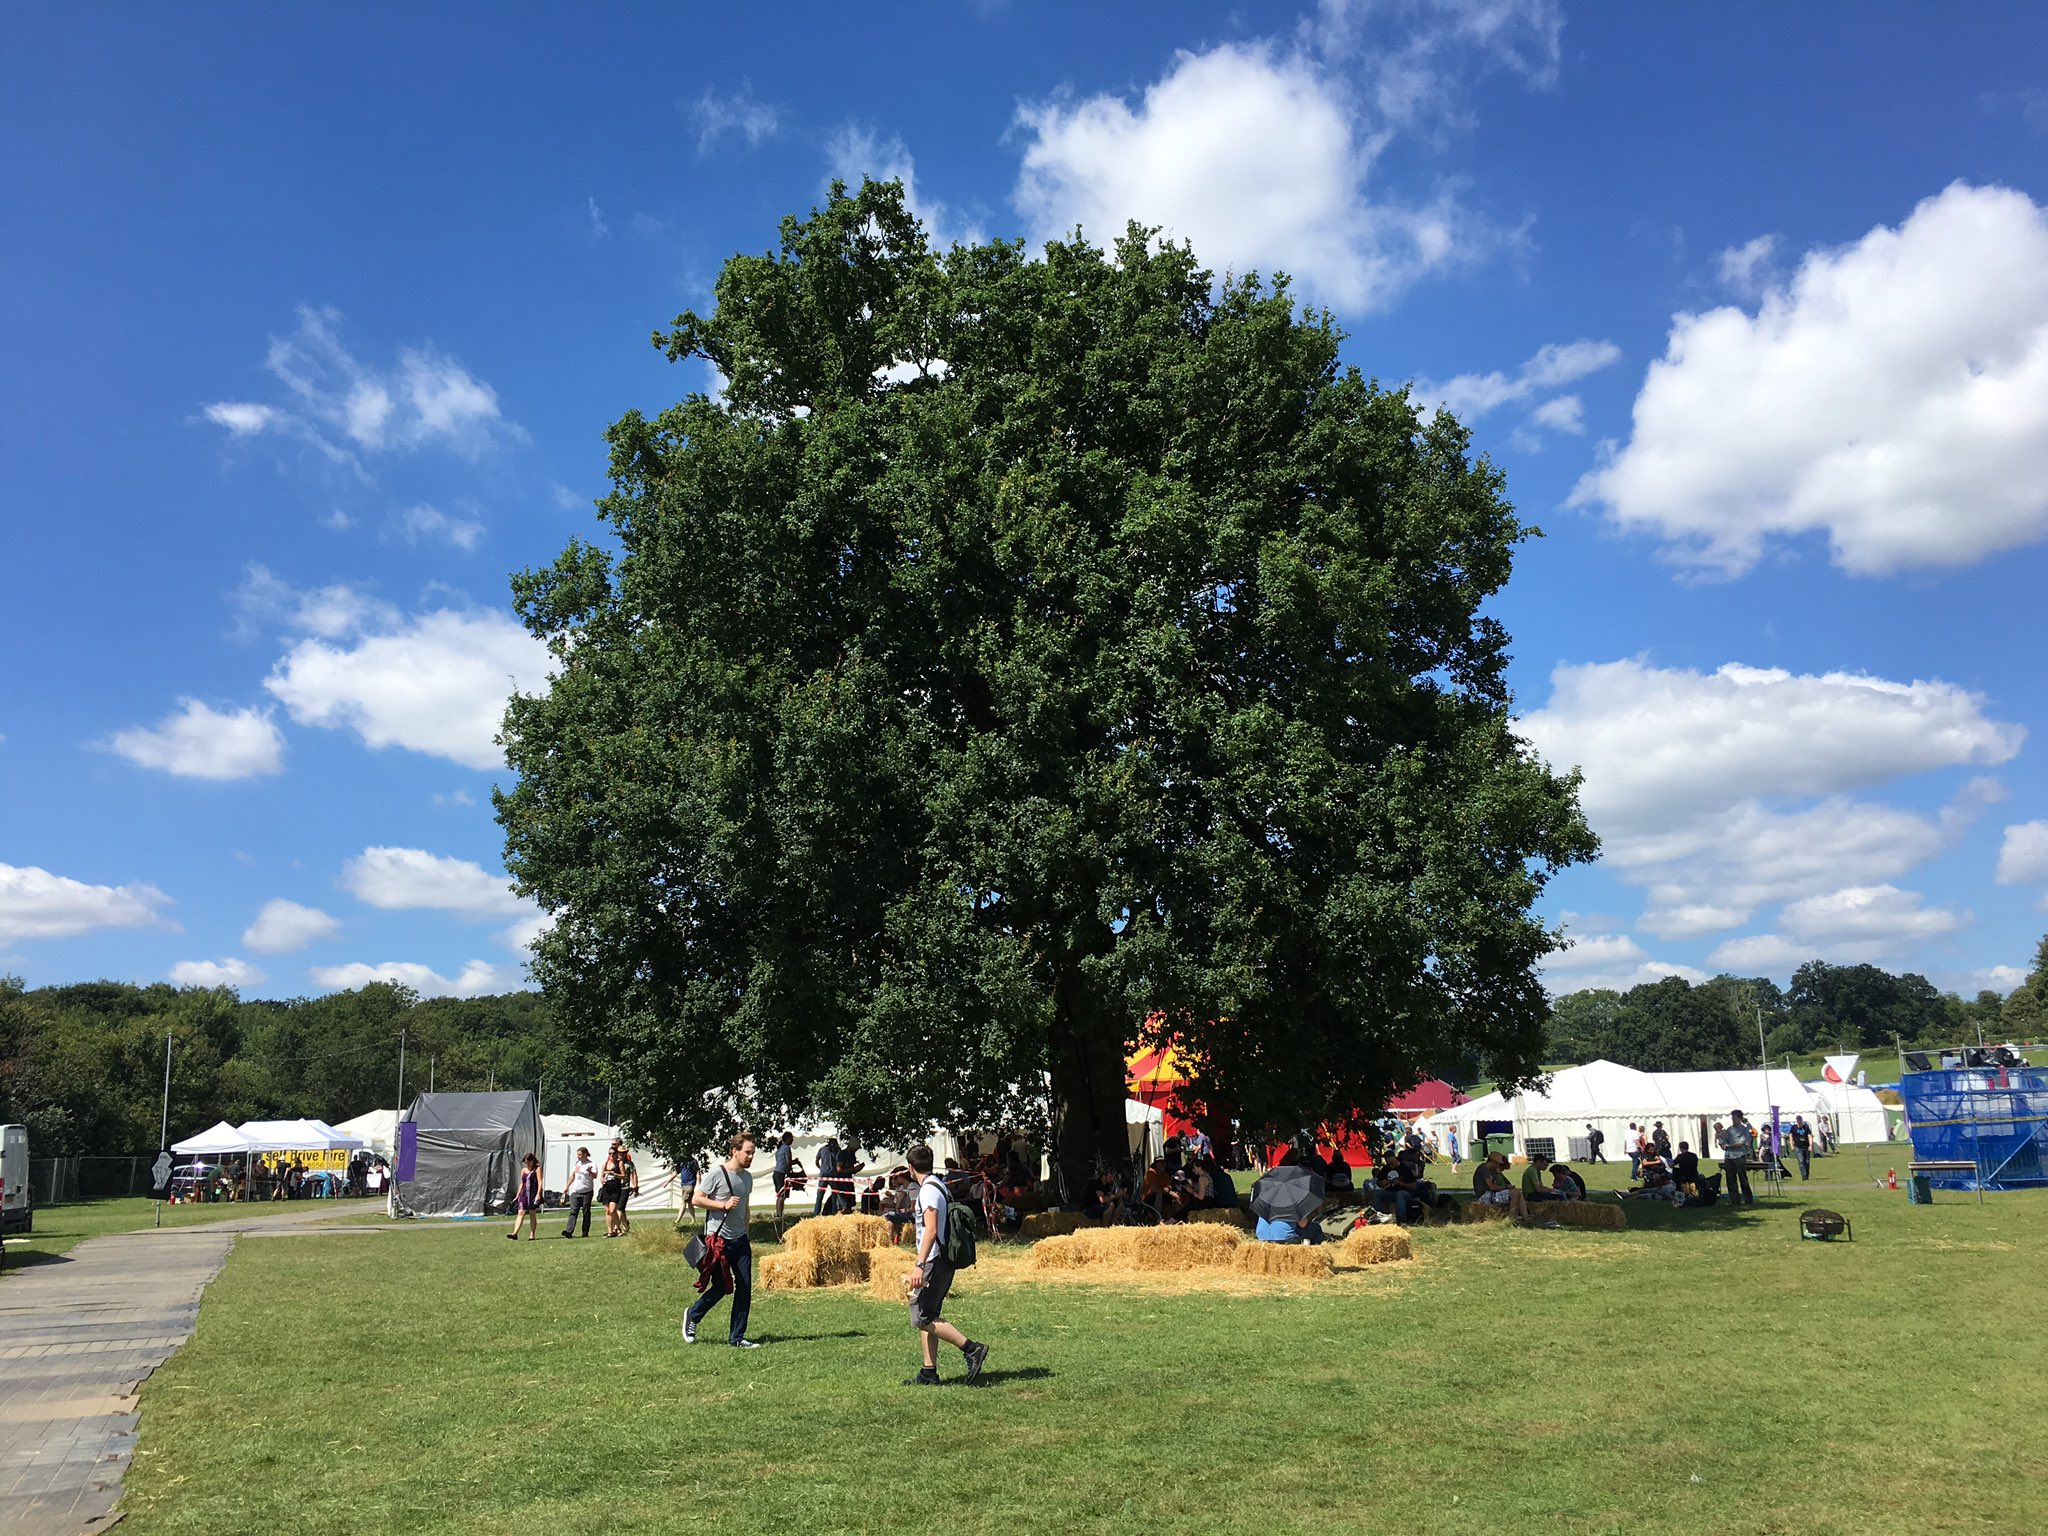 Just had the single most amazing conversation of the year under this tree. Thanks #emfcamp https://t.co/eaP0u8ktZc